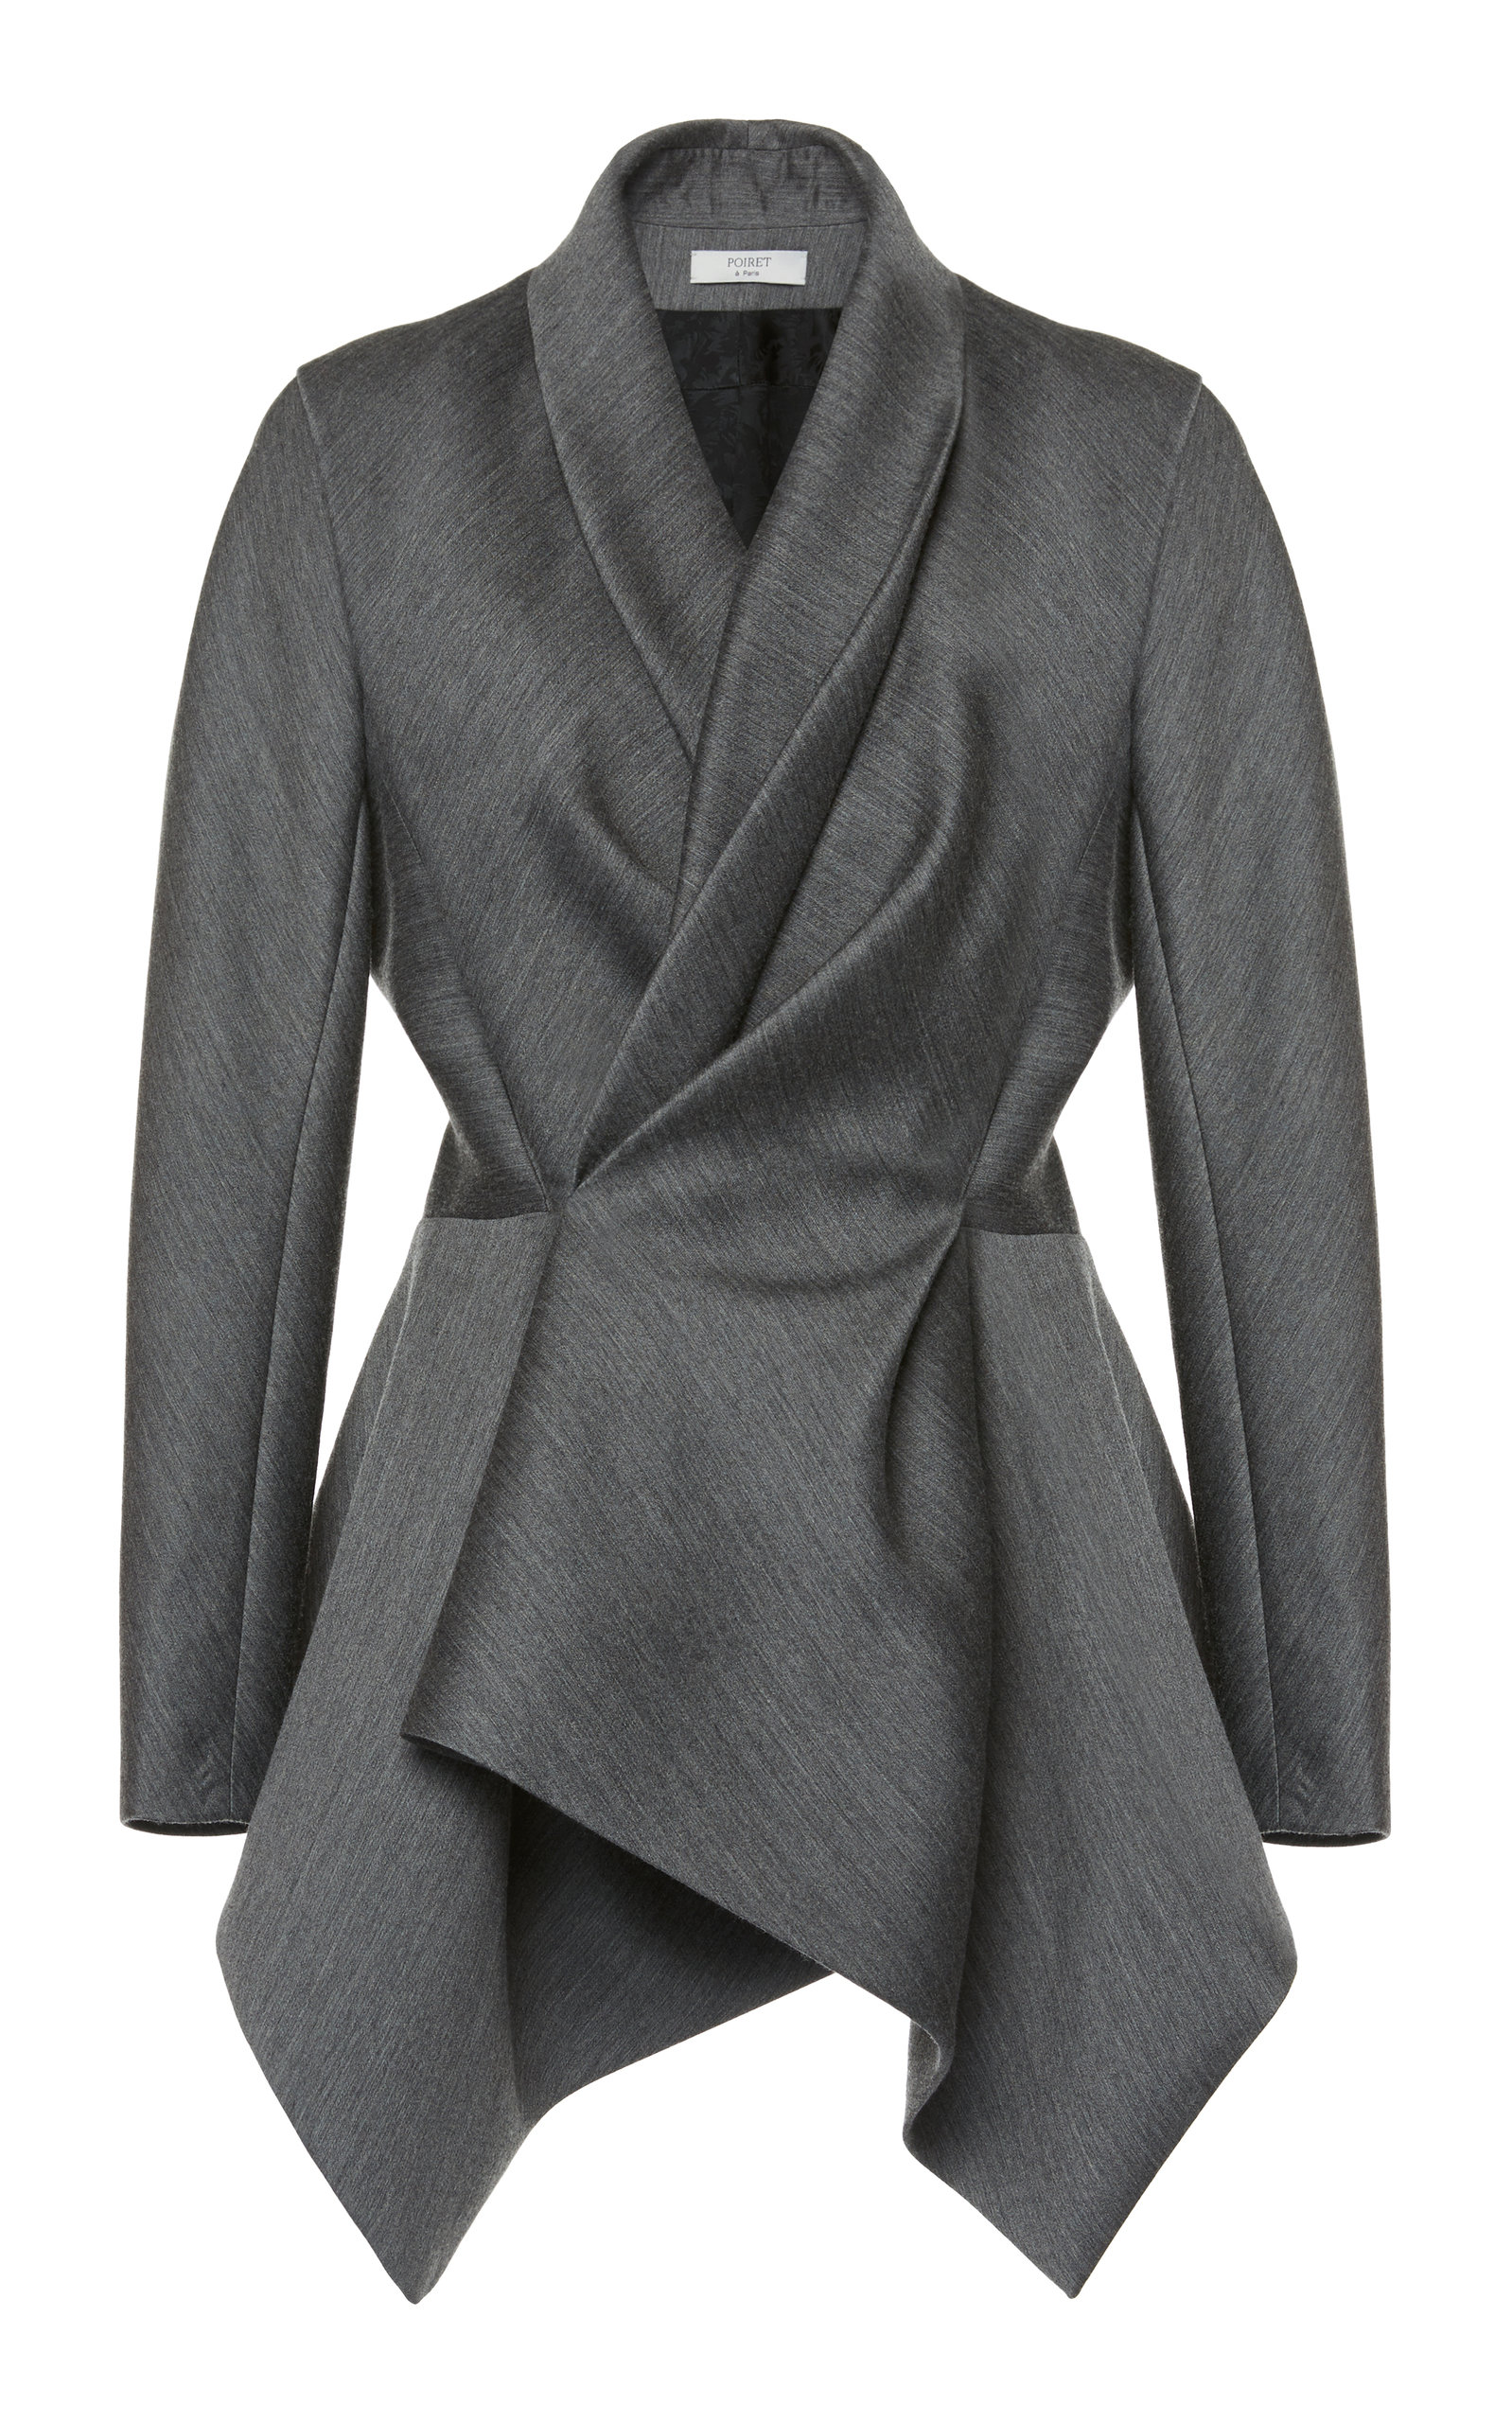 shop jacket leather product vegan blanknyc nordstrom faux of rack drapes draped image